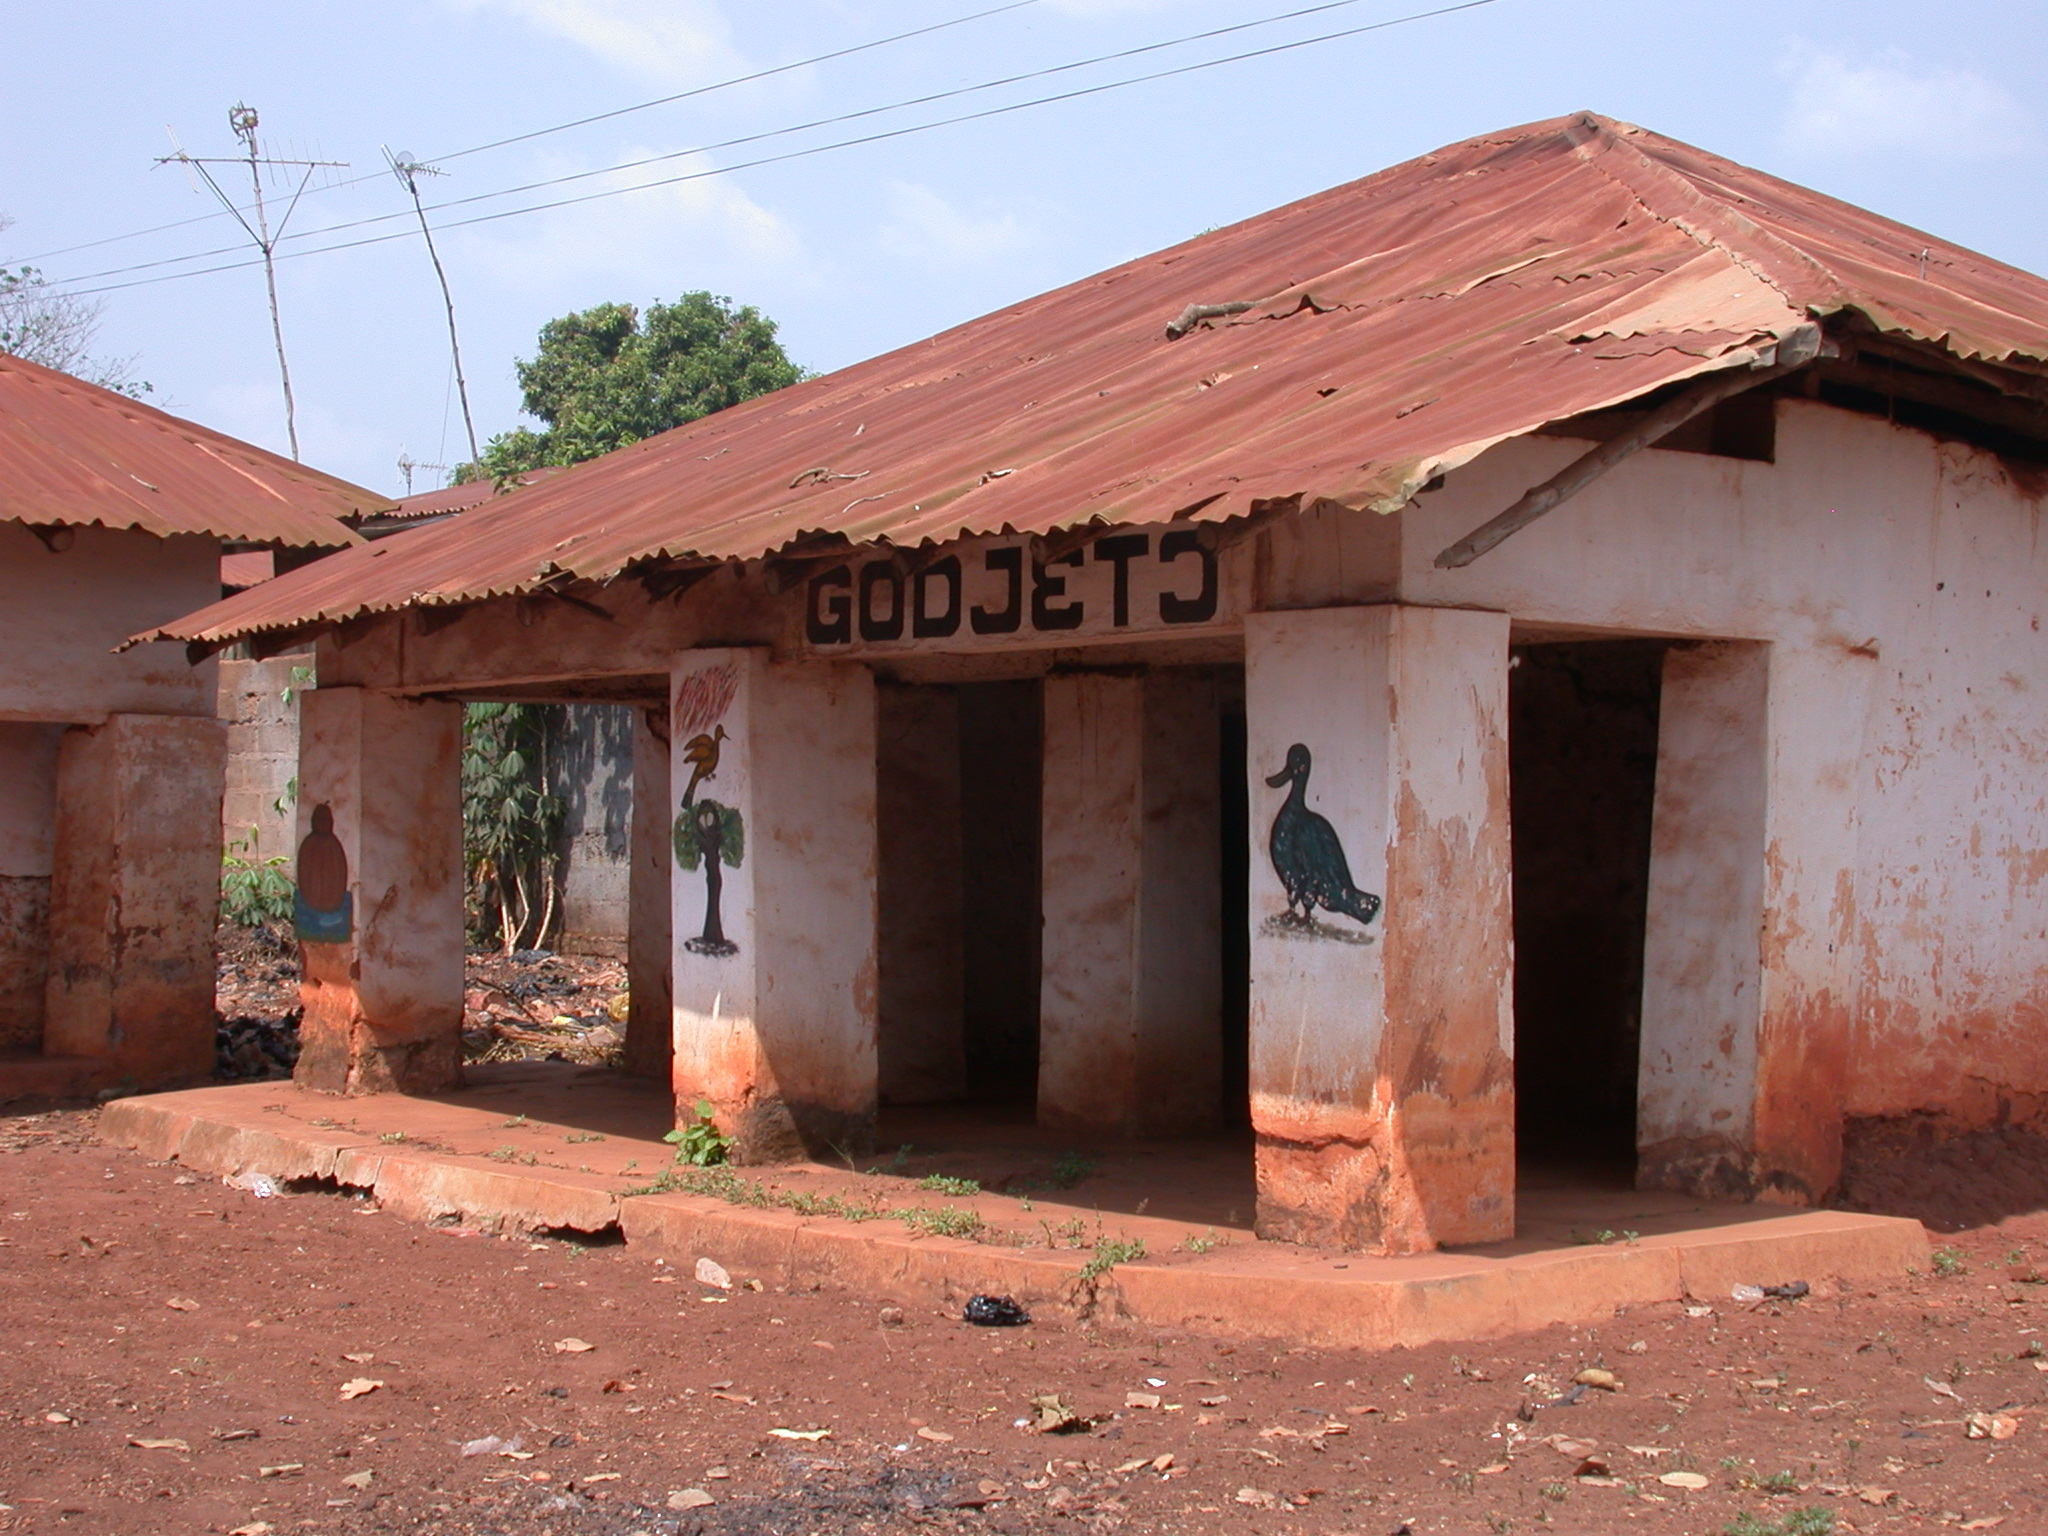 Probably Zewa Guezo Temple, Abomey, Benin